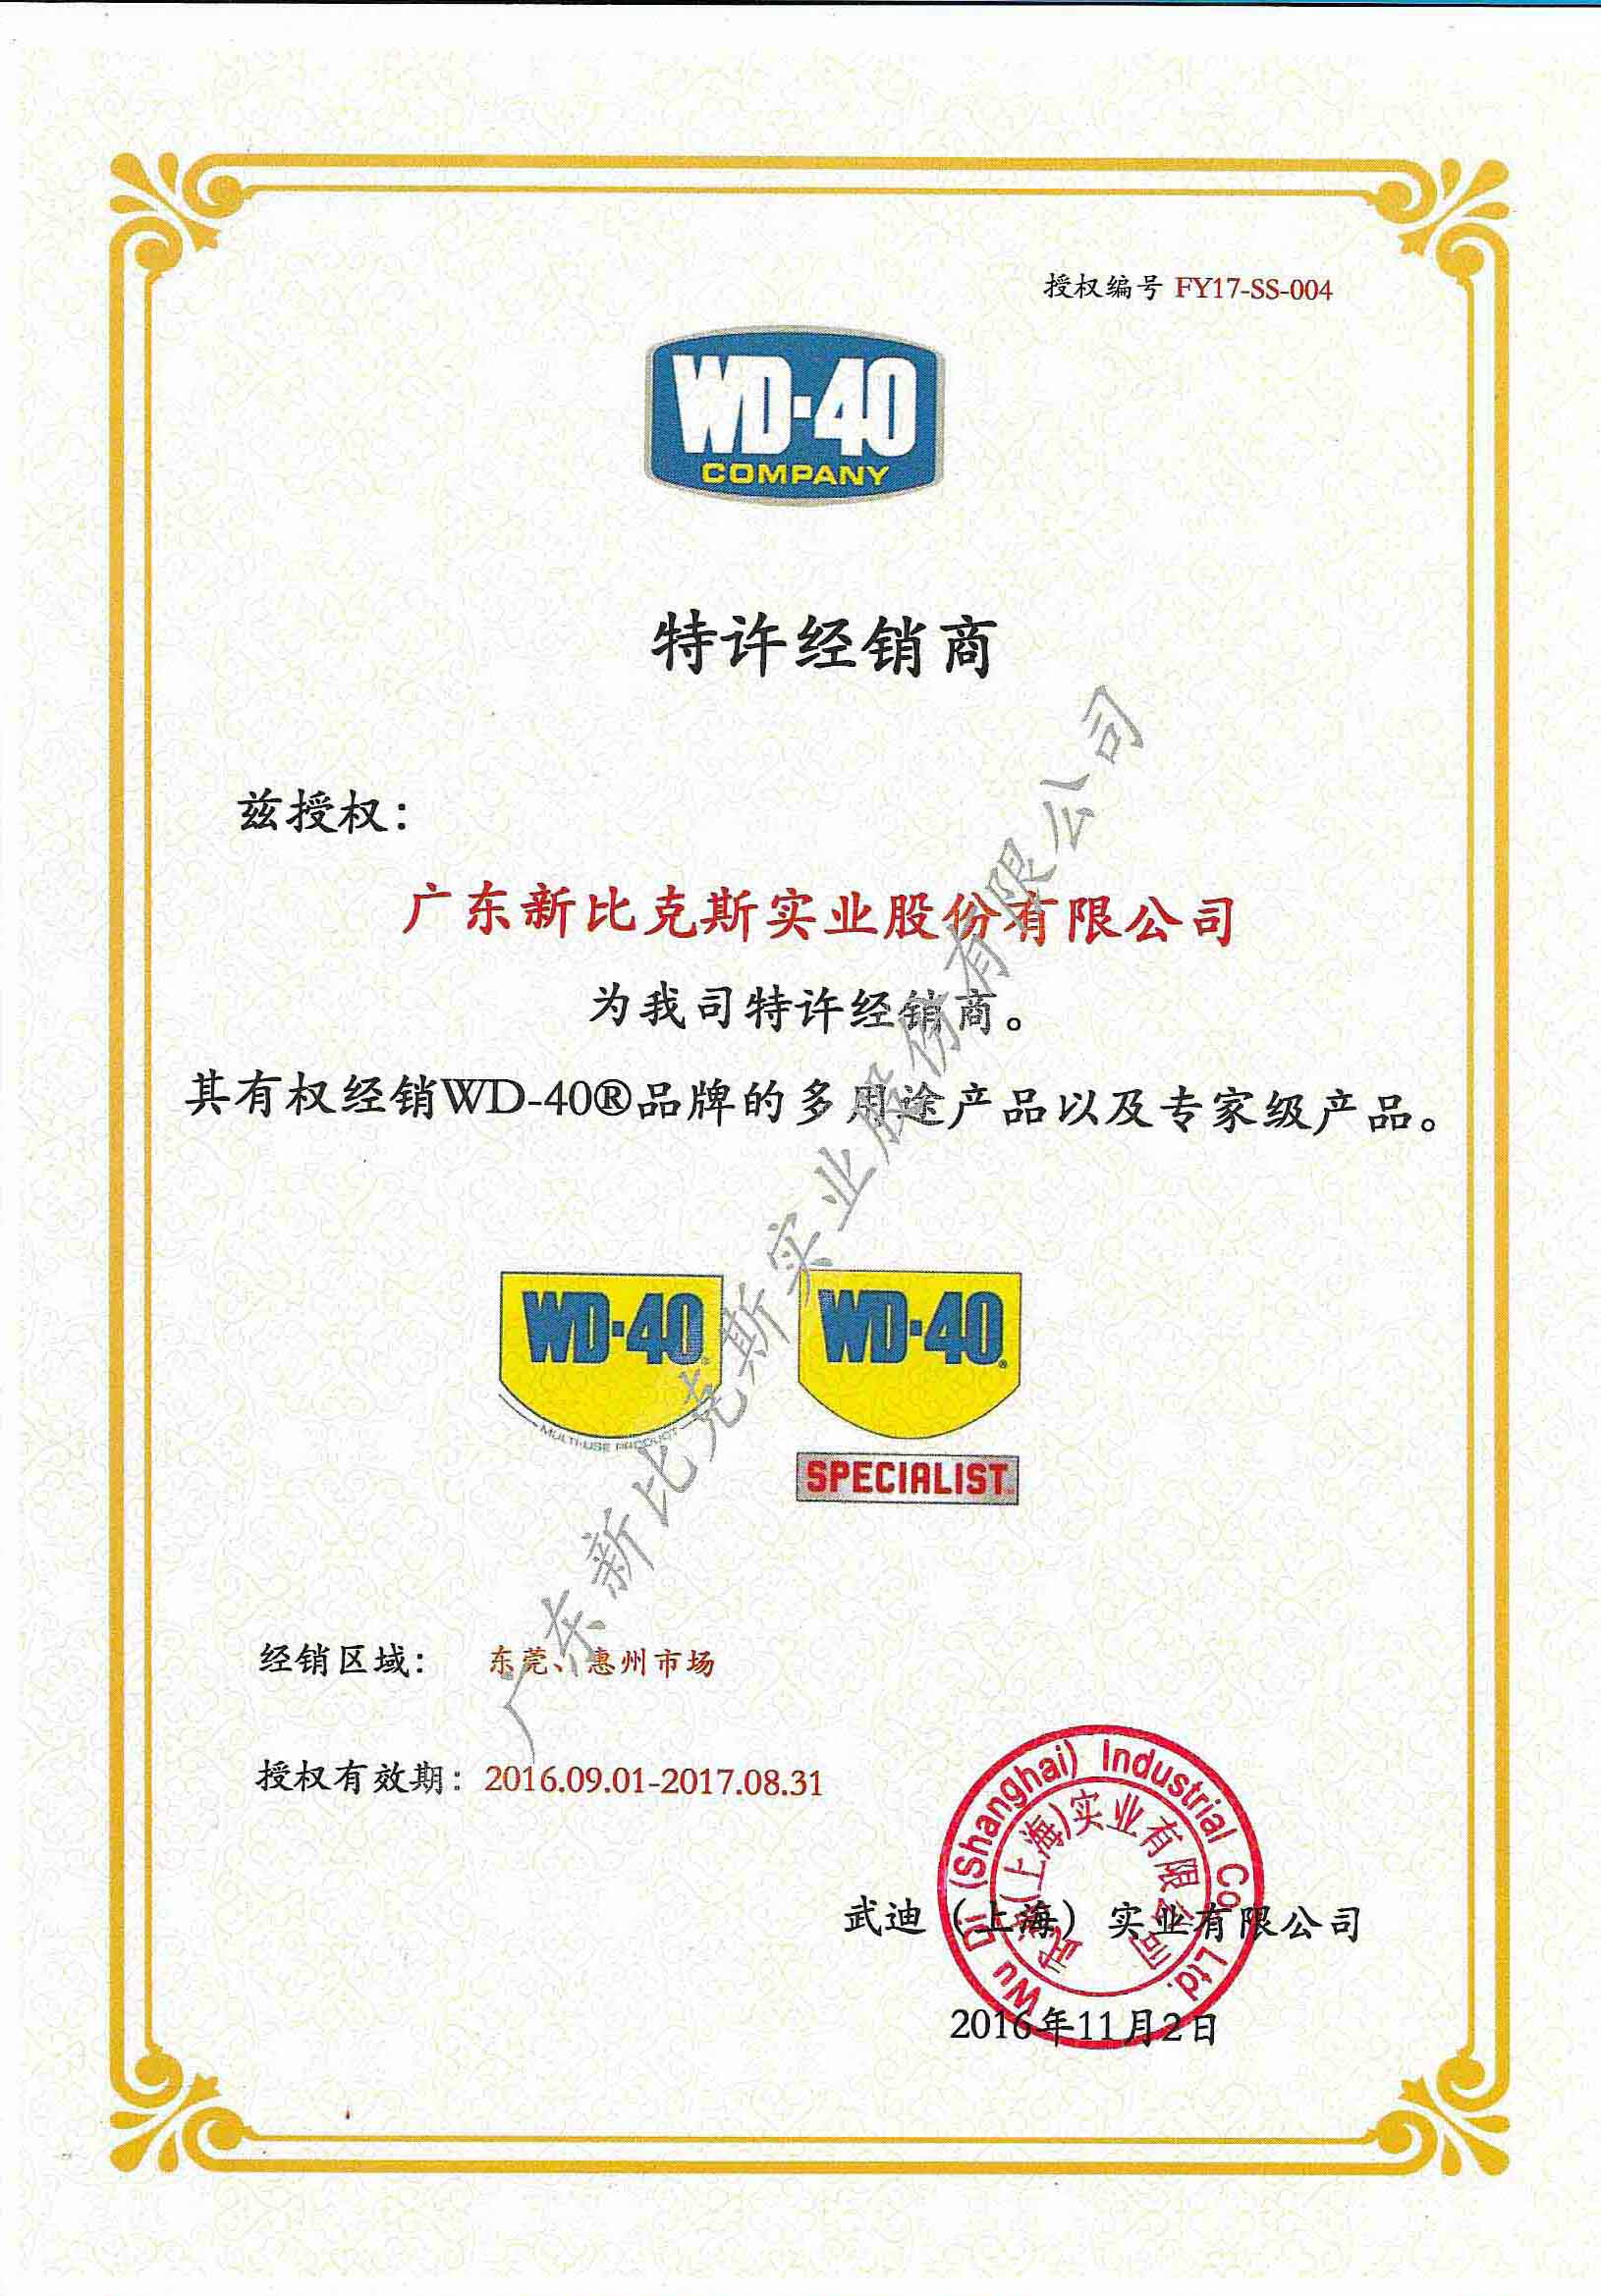 WD-40 Authorized Distributors